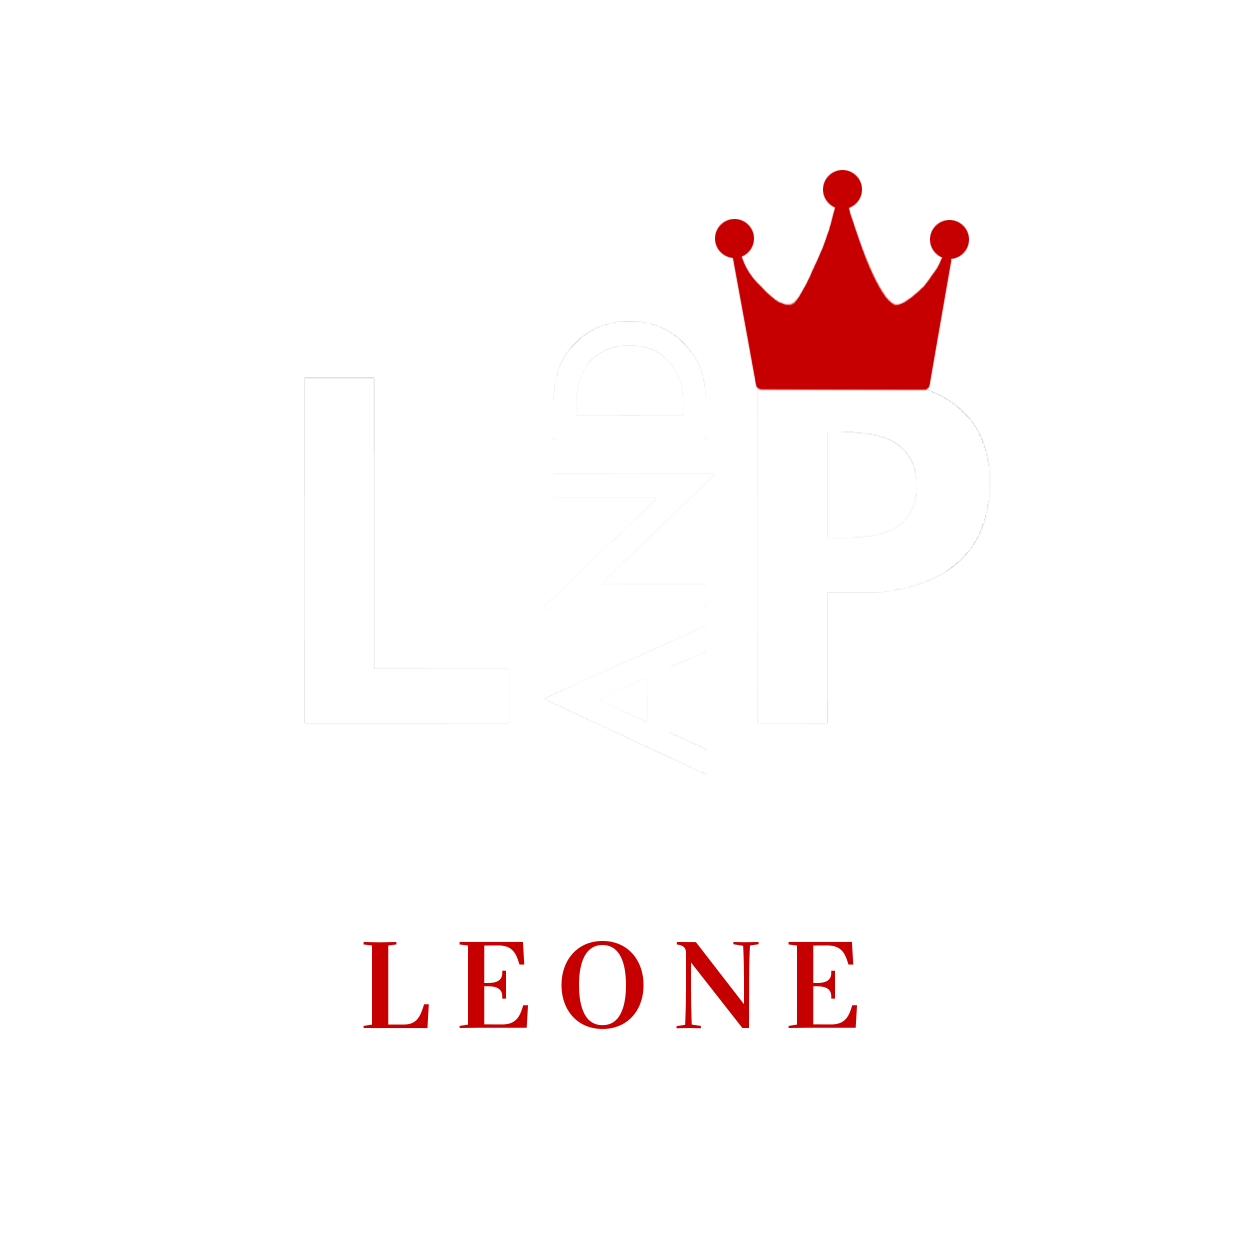 Oroscopo Life&People Magazine Leone | LifeandPeople.it